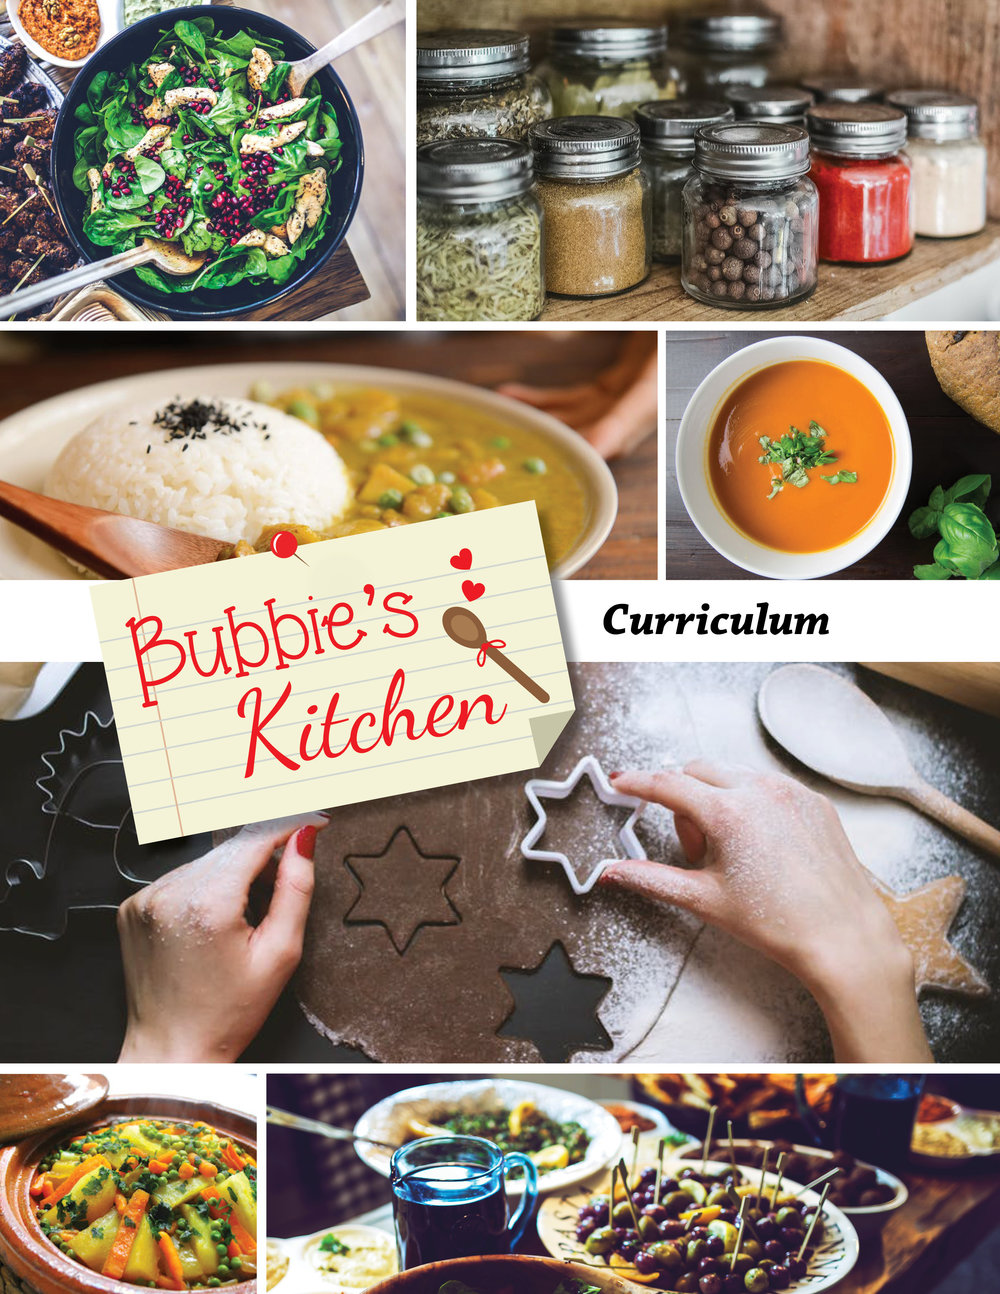 Curriculum Design - Designed by Shera, this 203 page Jewish Cooking curriculum was launched at the Hazon Food Conference in August of 2018. Bubbie's Kitchen is a brand new Jewish educational family engagement cooking curriculum from K-6 grades. The core of this global curriculum is teaching and exposing children and families to Jewish cuisine and culture in nearly every continent where Jewish community can be found. You may view a selection of the curriculum by clicking the image.